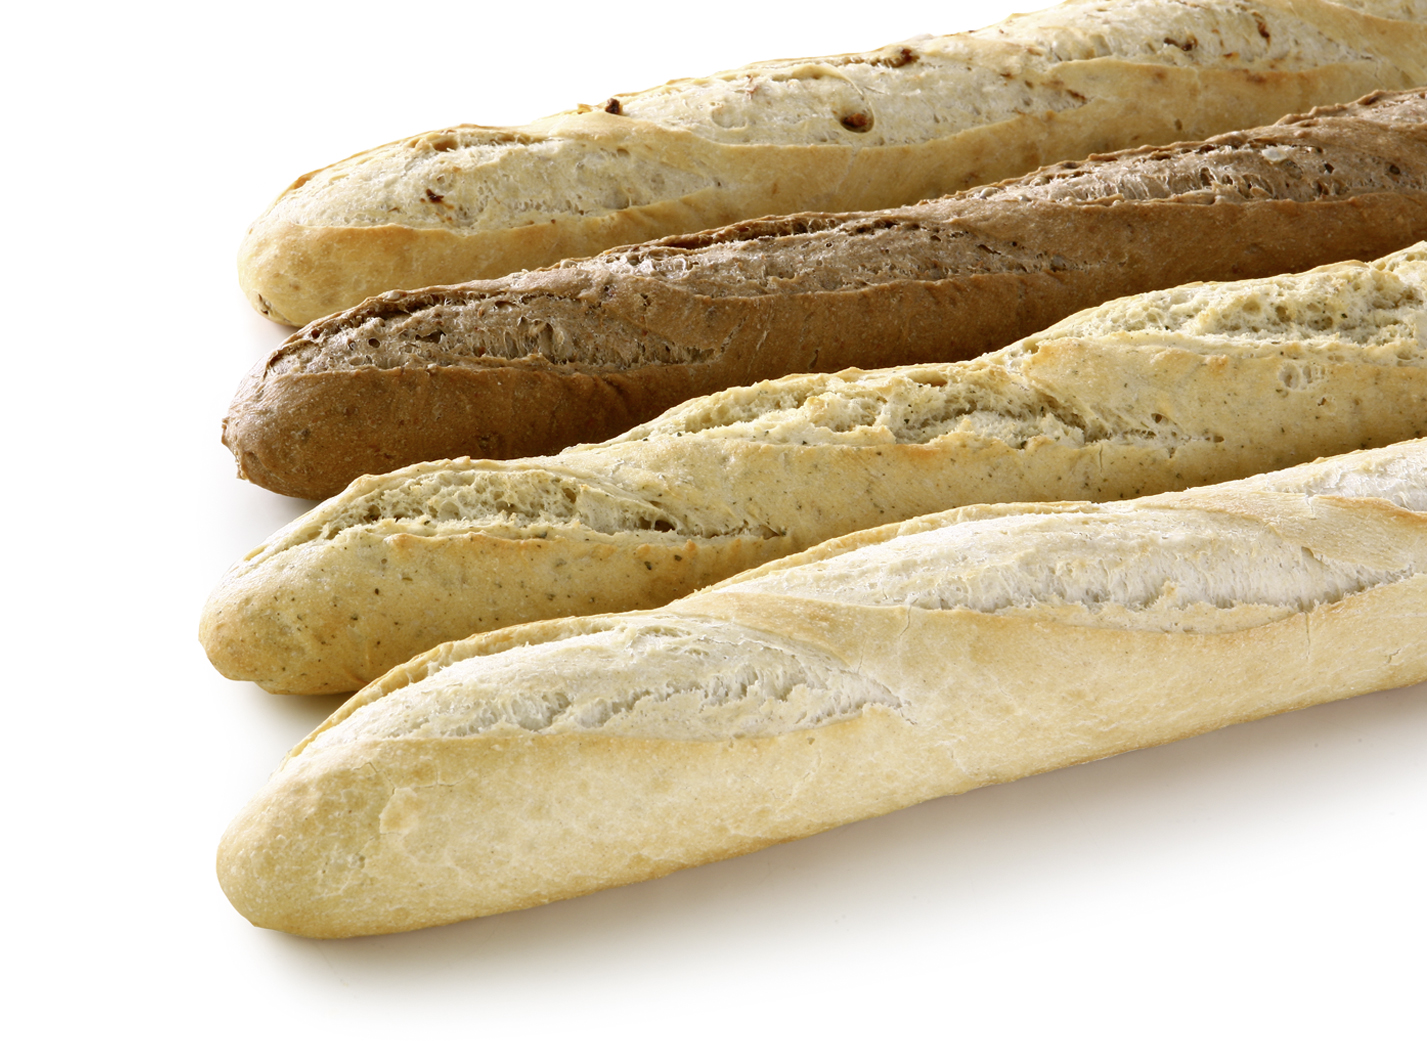 Baguette Box mix - Baguette-Mix of the varieties: baguette natural, finn baguette, garlic baguette, onion baguette